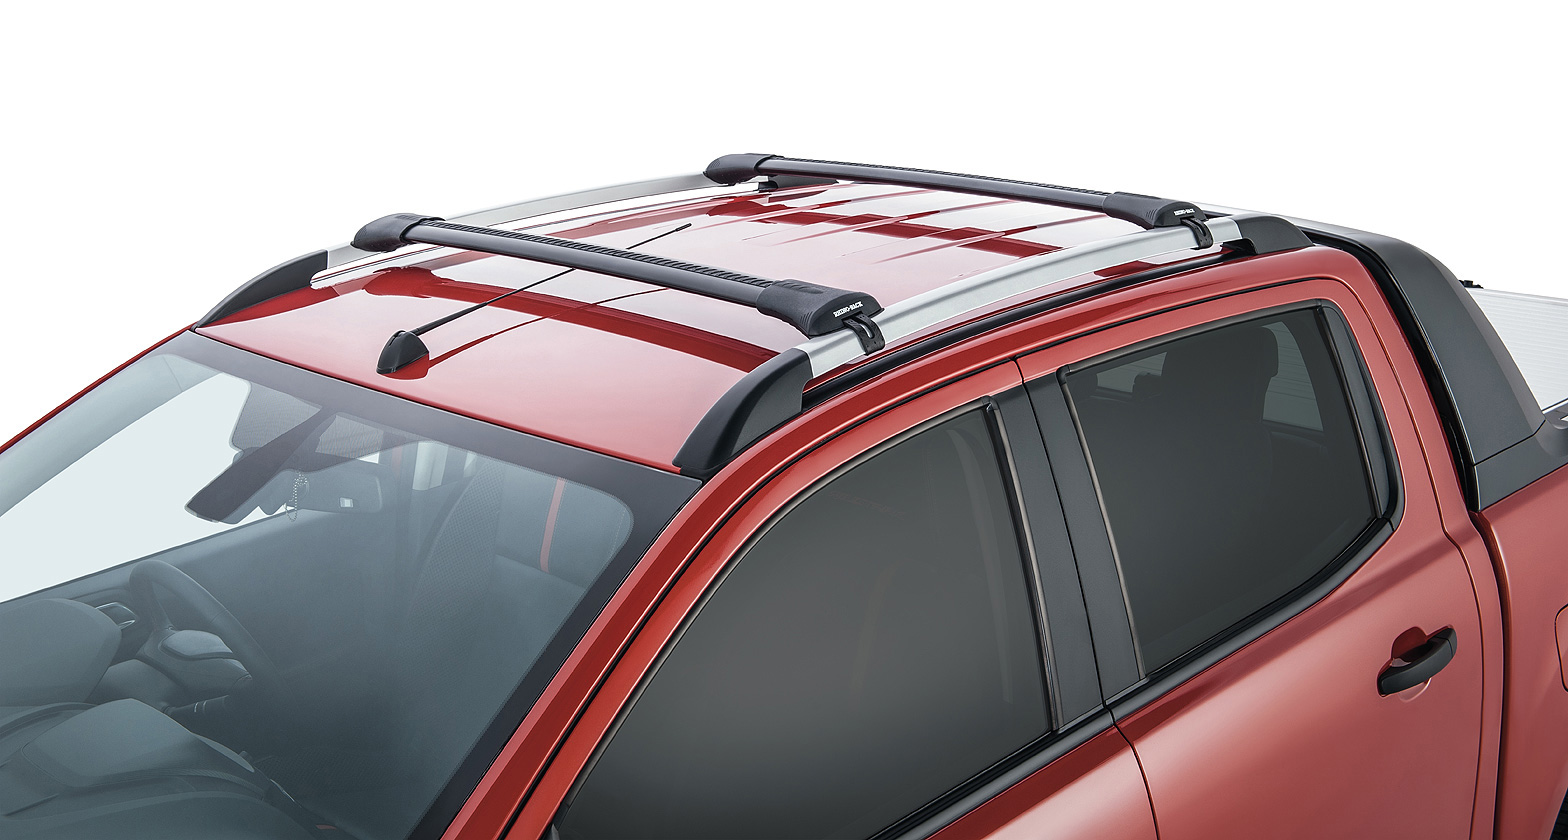 rhino rack stealthbar roof rack system. Black Bedroom Furniture Sets. Home Design Ideas